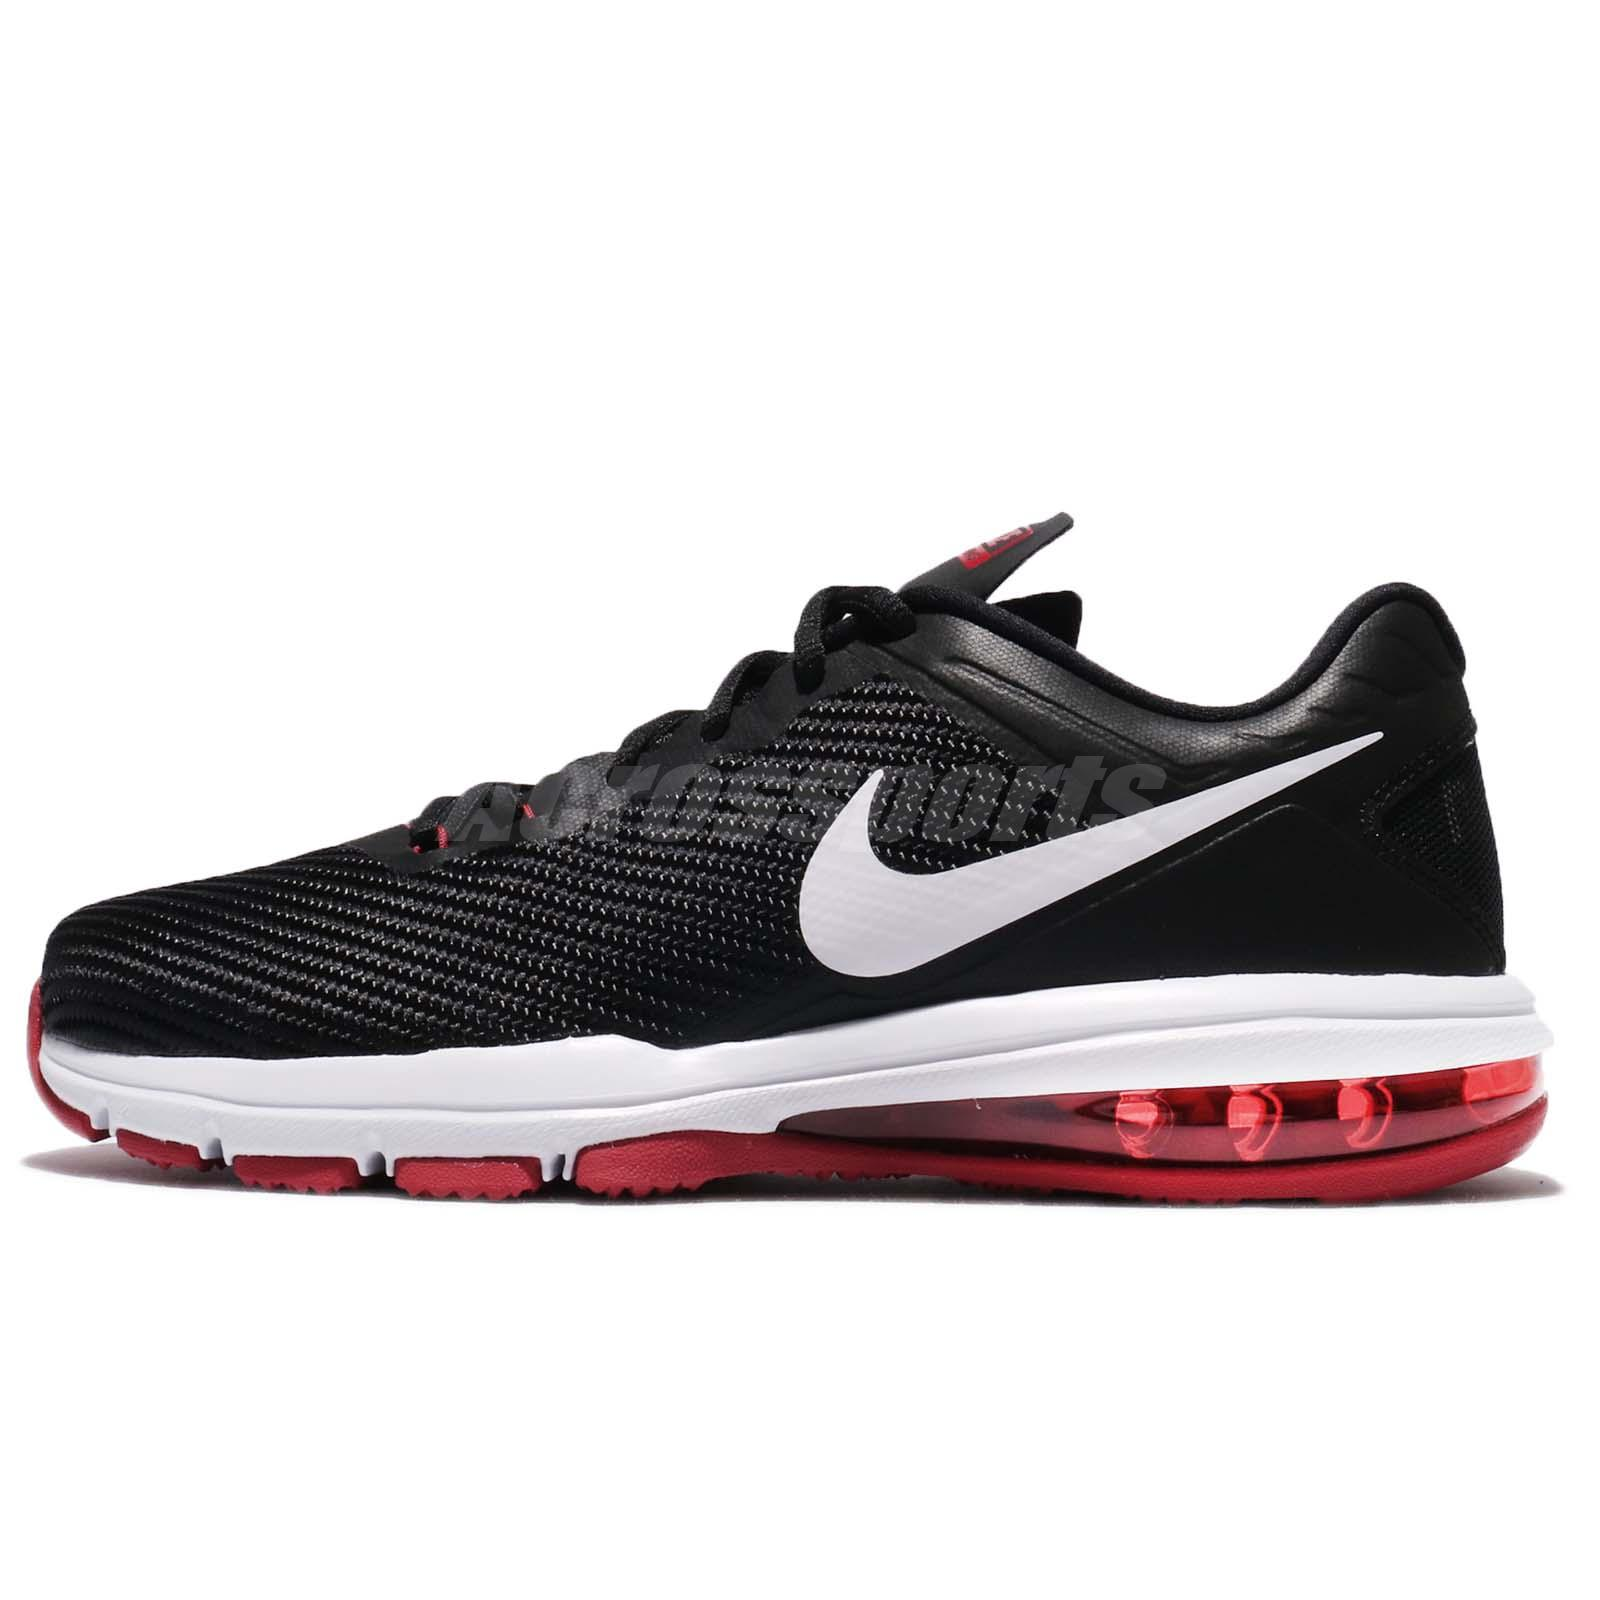 sale retailer 37185 55c0f ... Cross Training Shoes Nike Air Max Full Ride TR 1.5 Black Tough Red Men  Training Shoes 869633-060 ...